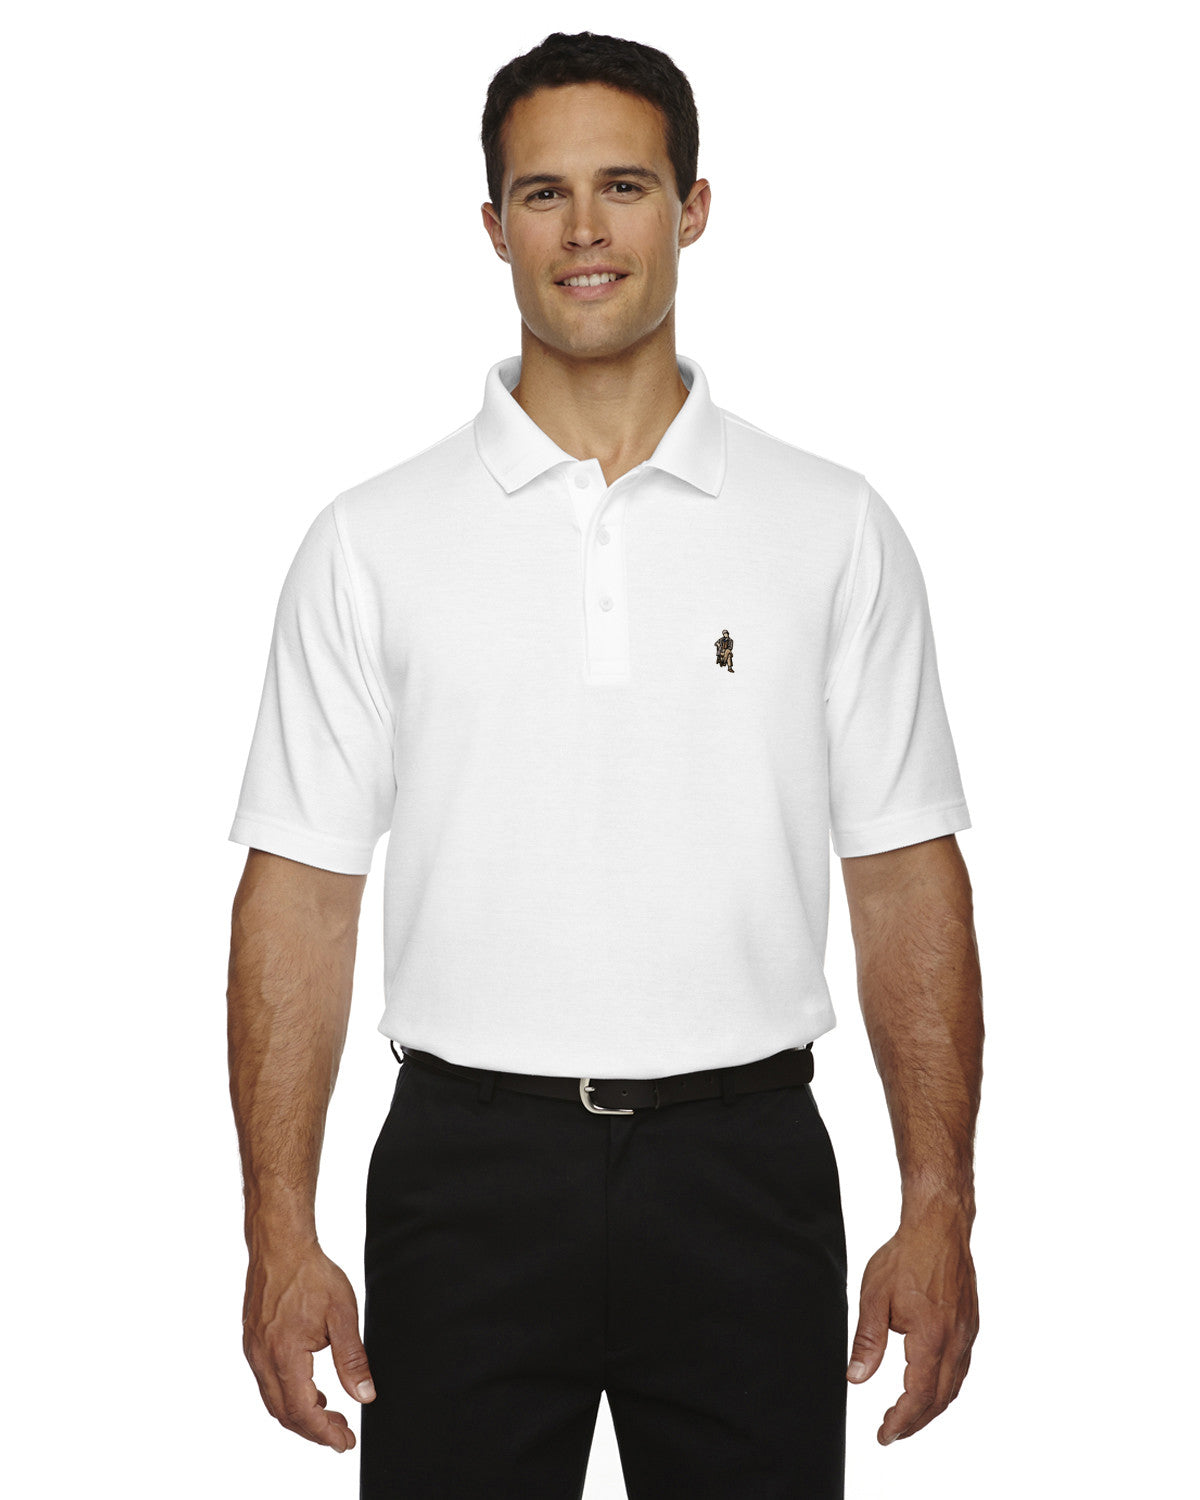 Rainwater's Logo Performance Solid Polo - Rainwater's Men's Clothing and Tuxedo Rental